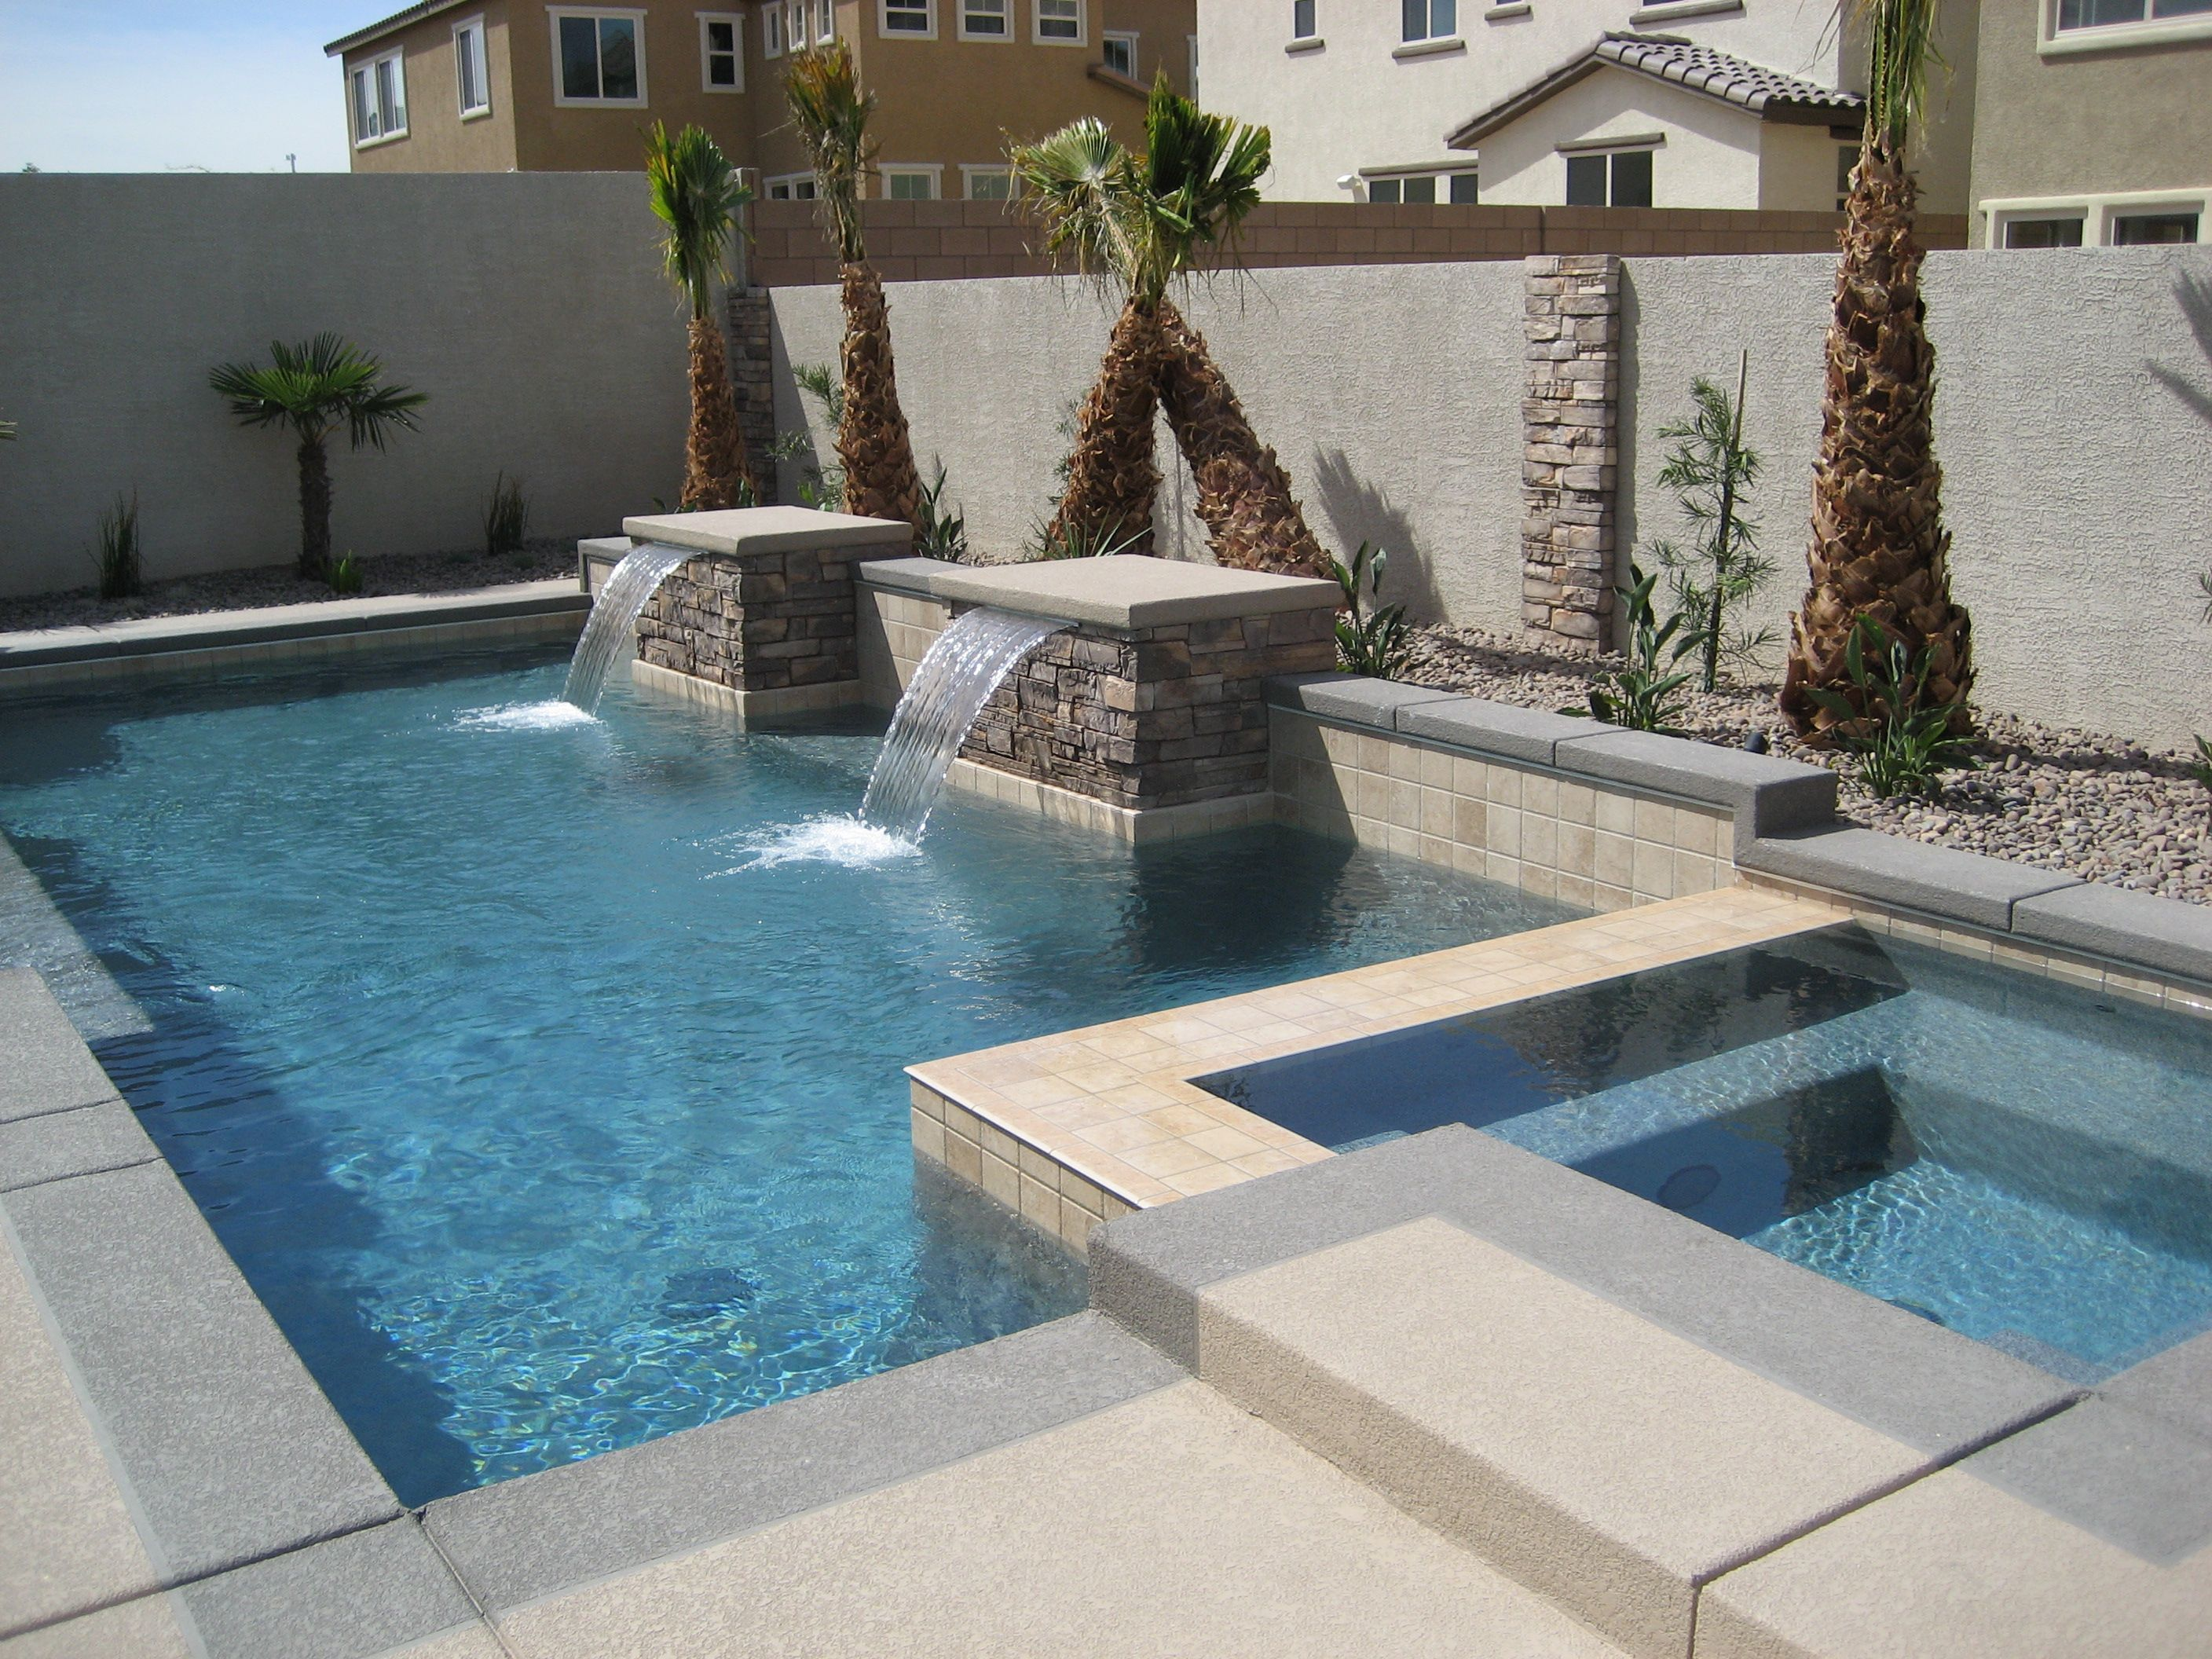 Geometric design pool and spa with water features | Geometric Pools ...